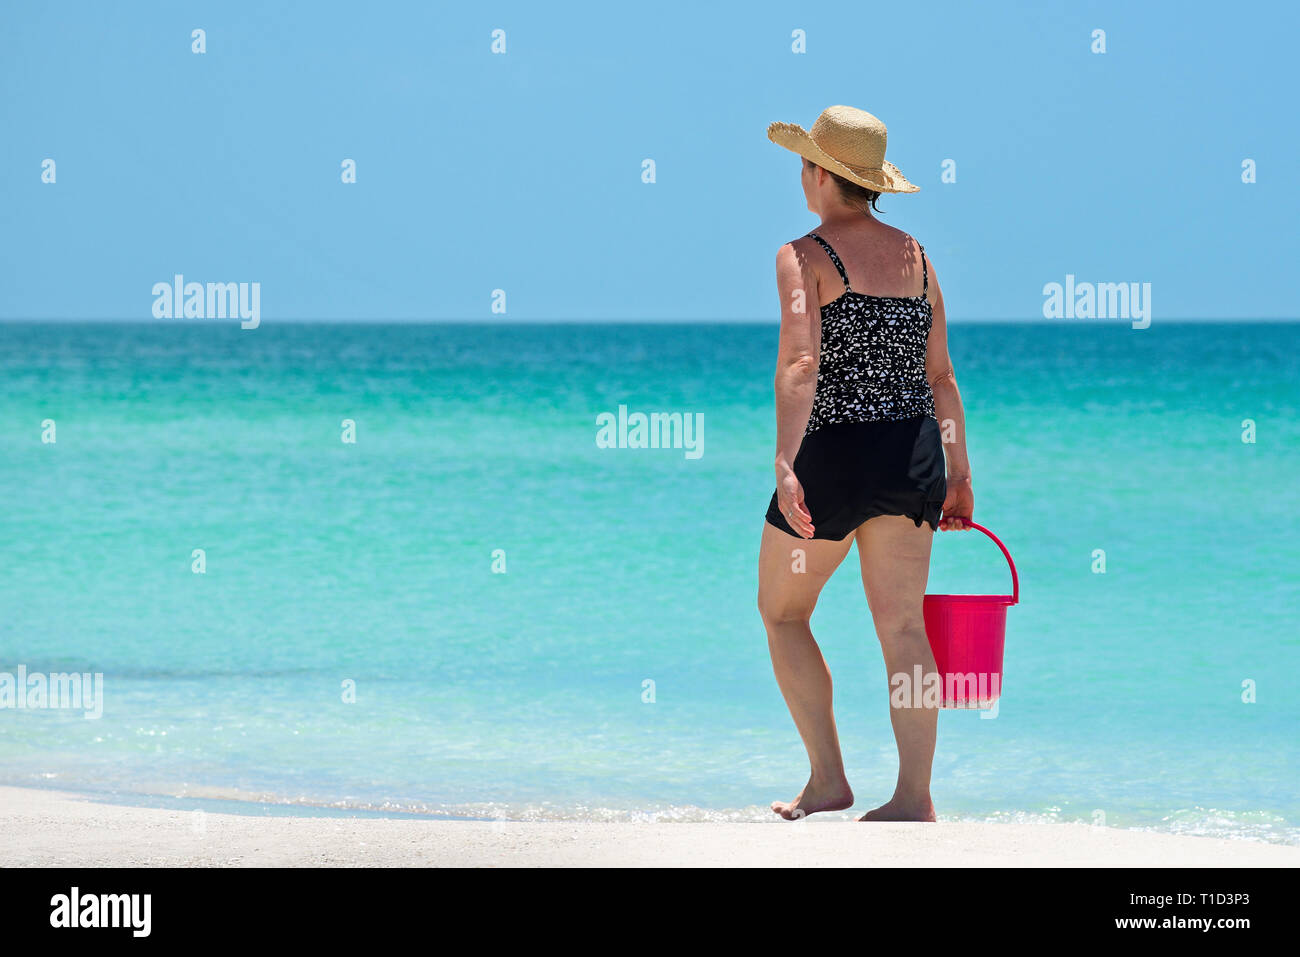 759529d8 Woman Walking on Gulf Coast Beach in Florida carrying a Red Beach Bucket -  Stock Image